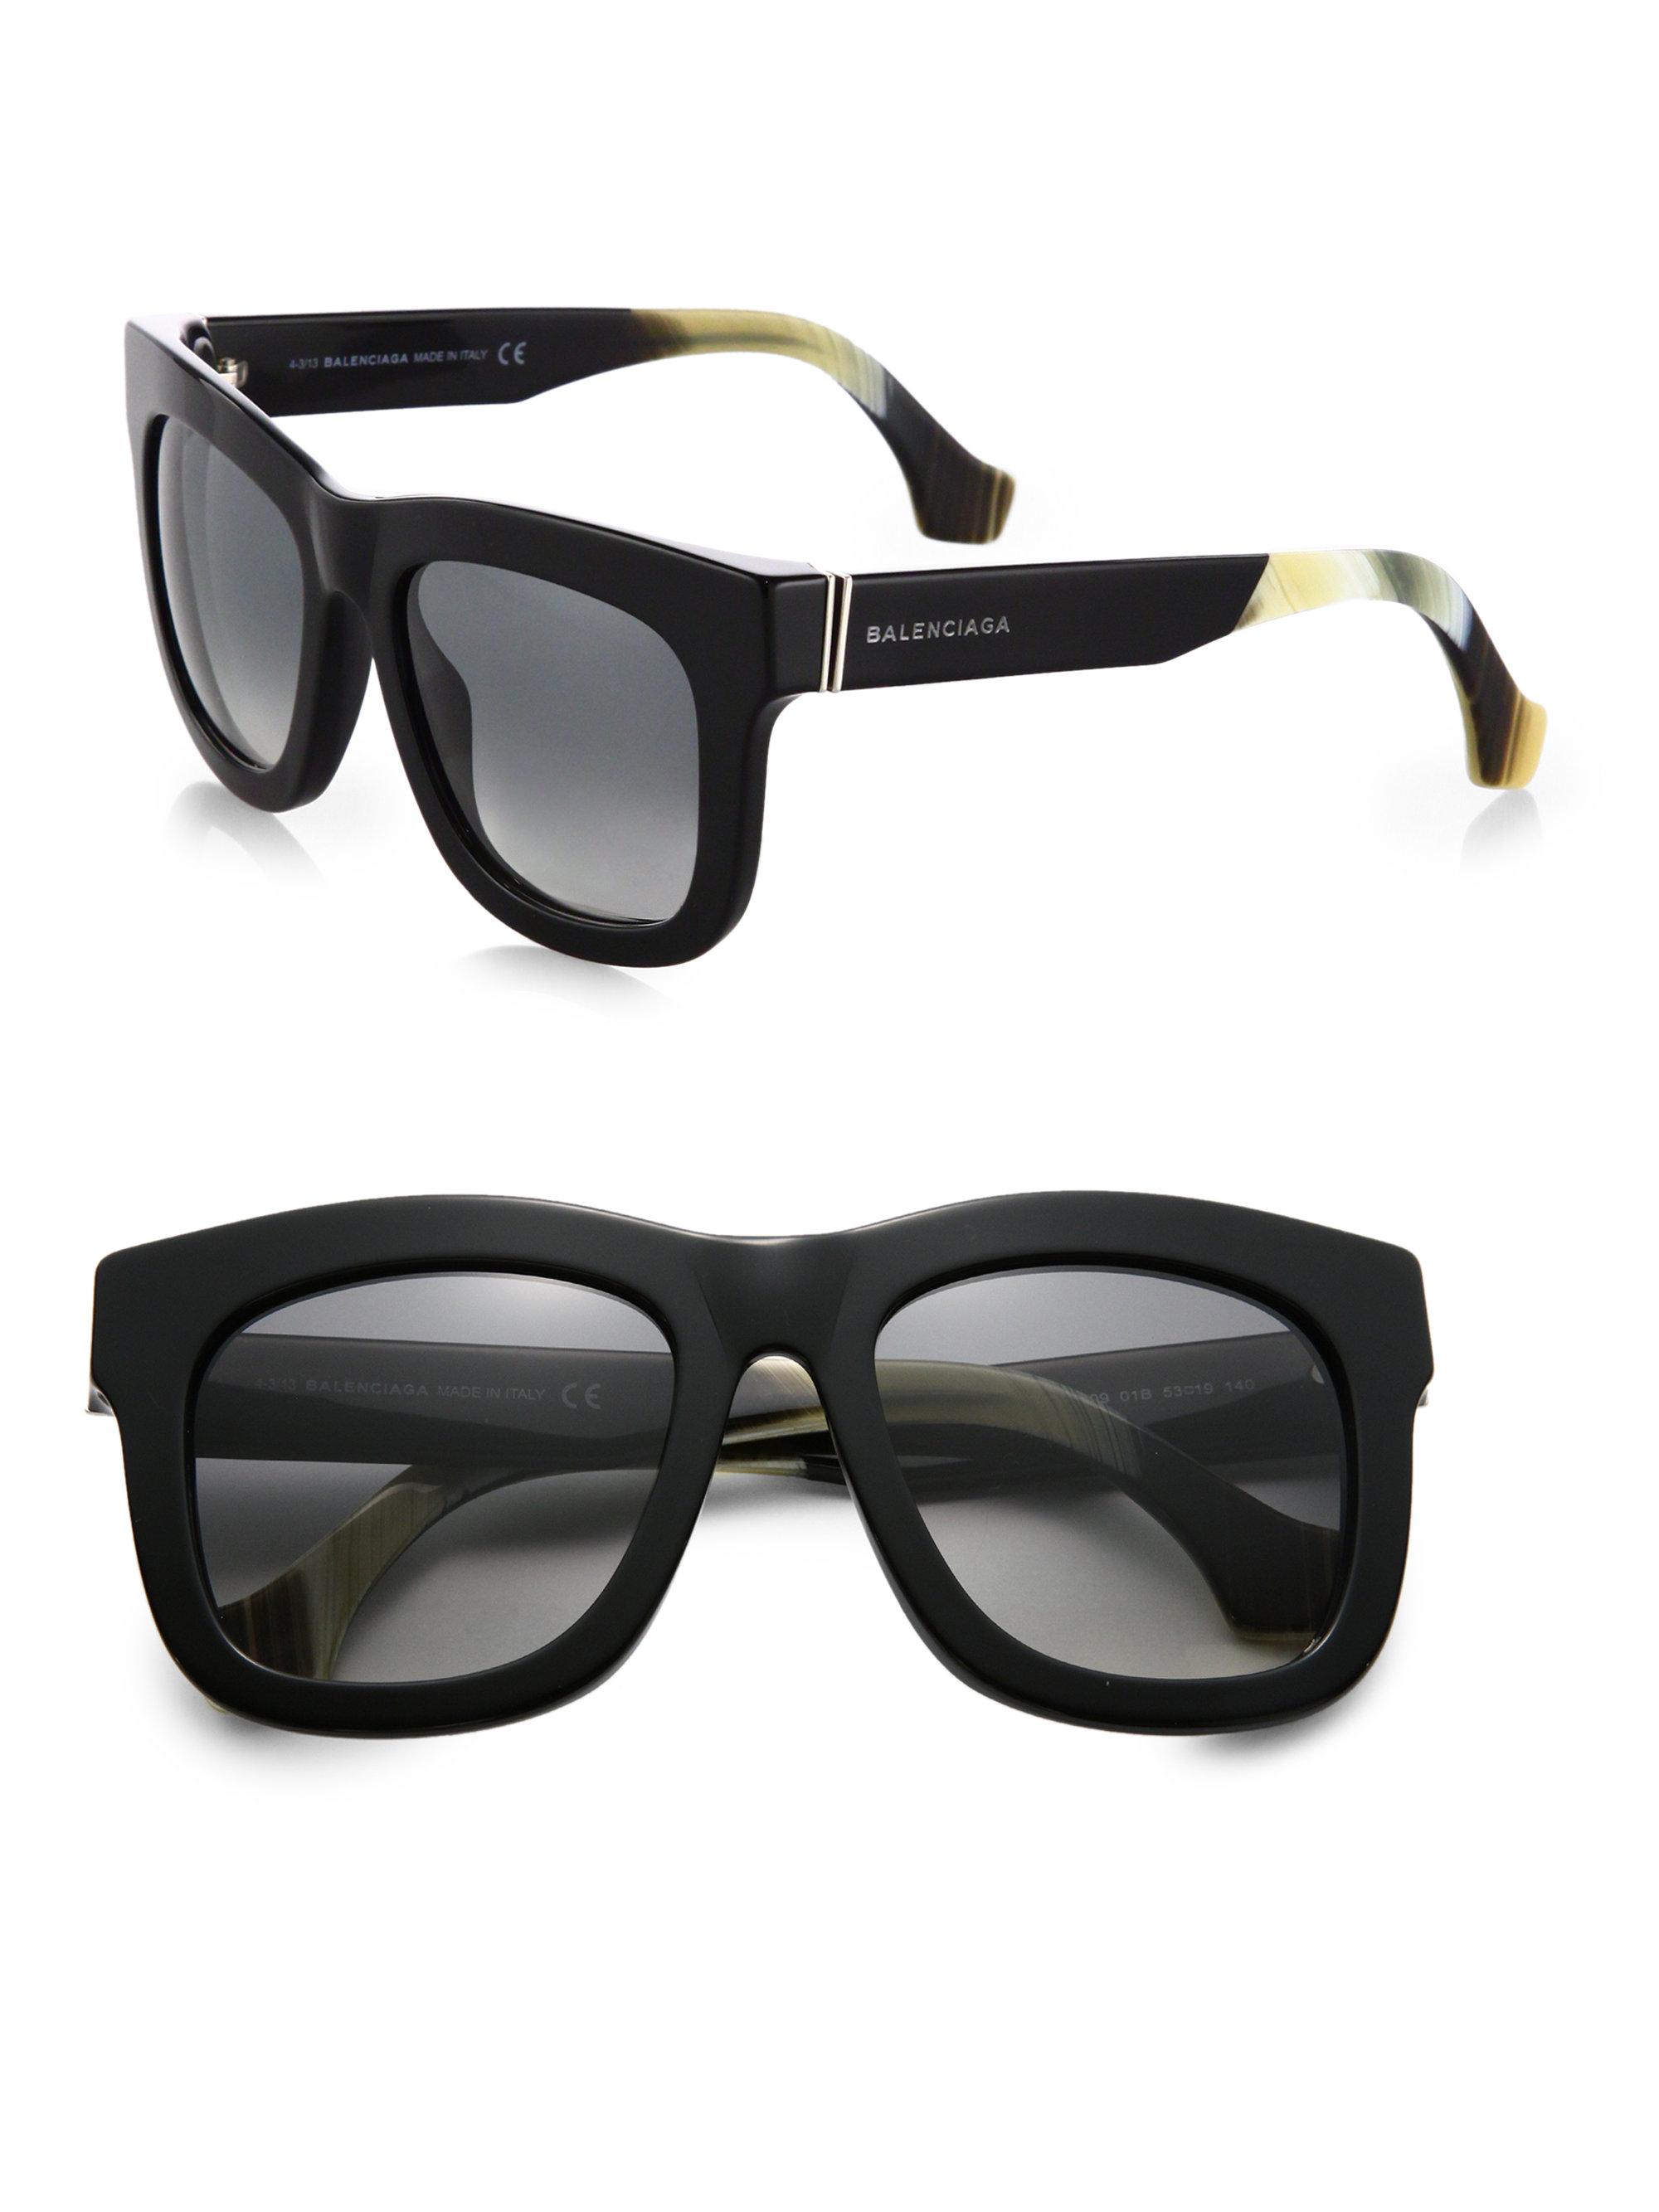 95e0c85c712b Balenciaga Oversized Square Sunglasses in Black - Lyst